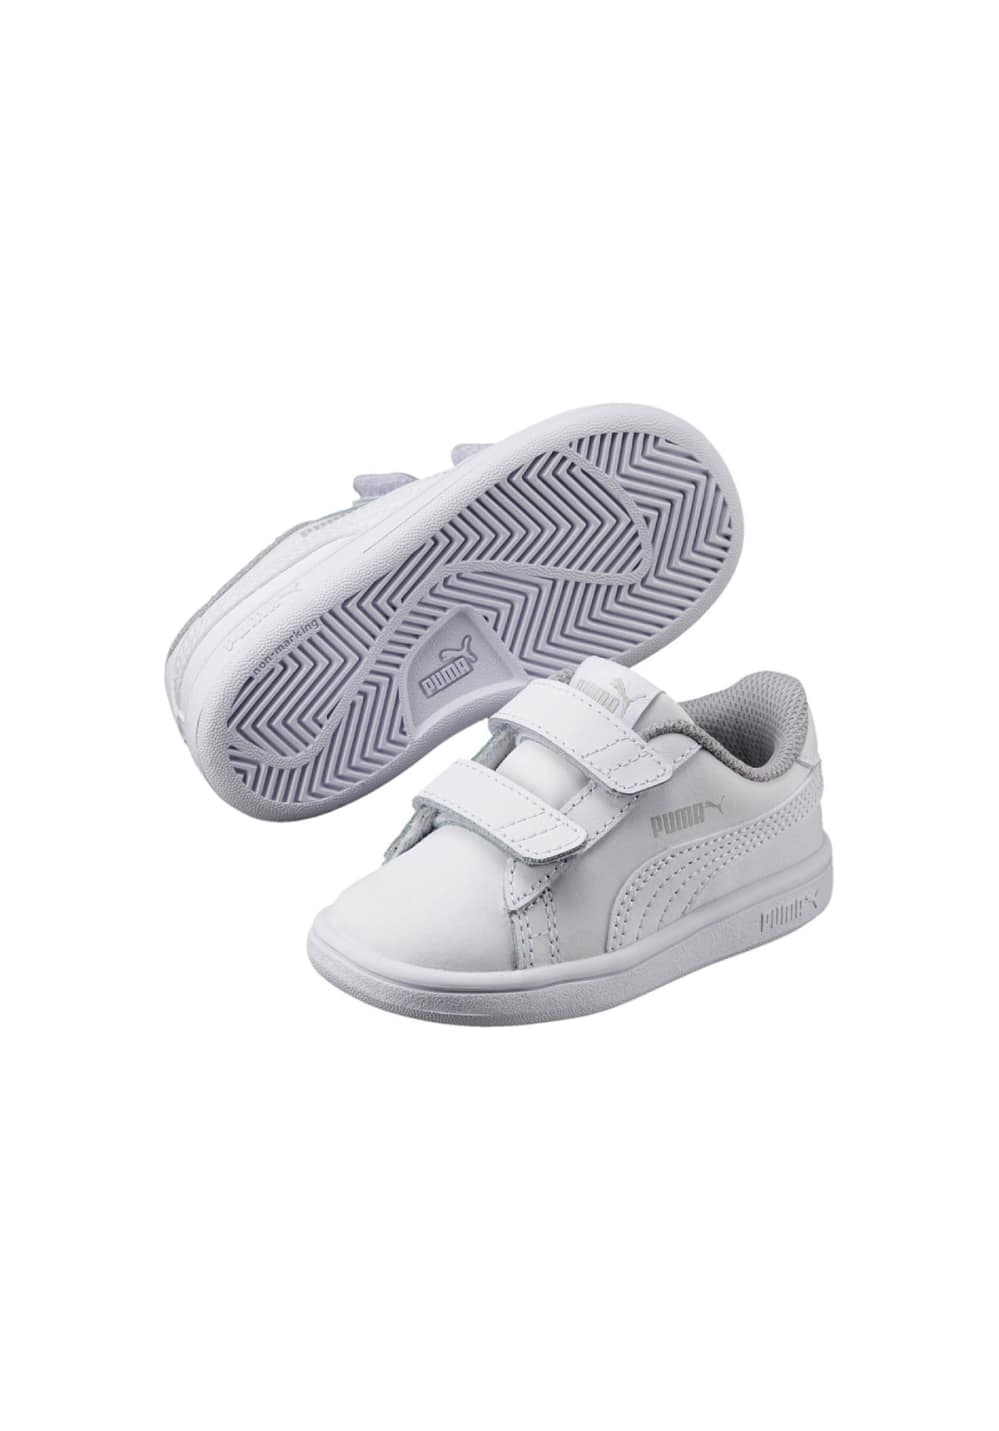 0f6887a31e Puma Smash V2 L V Ps - Sneaker - White